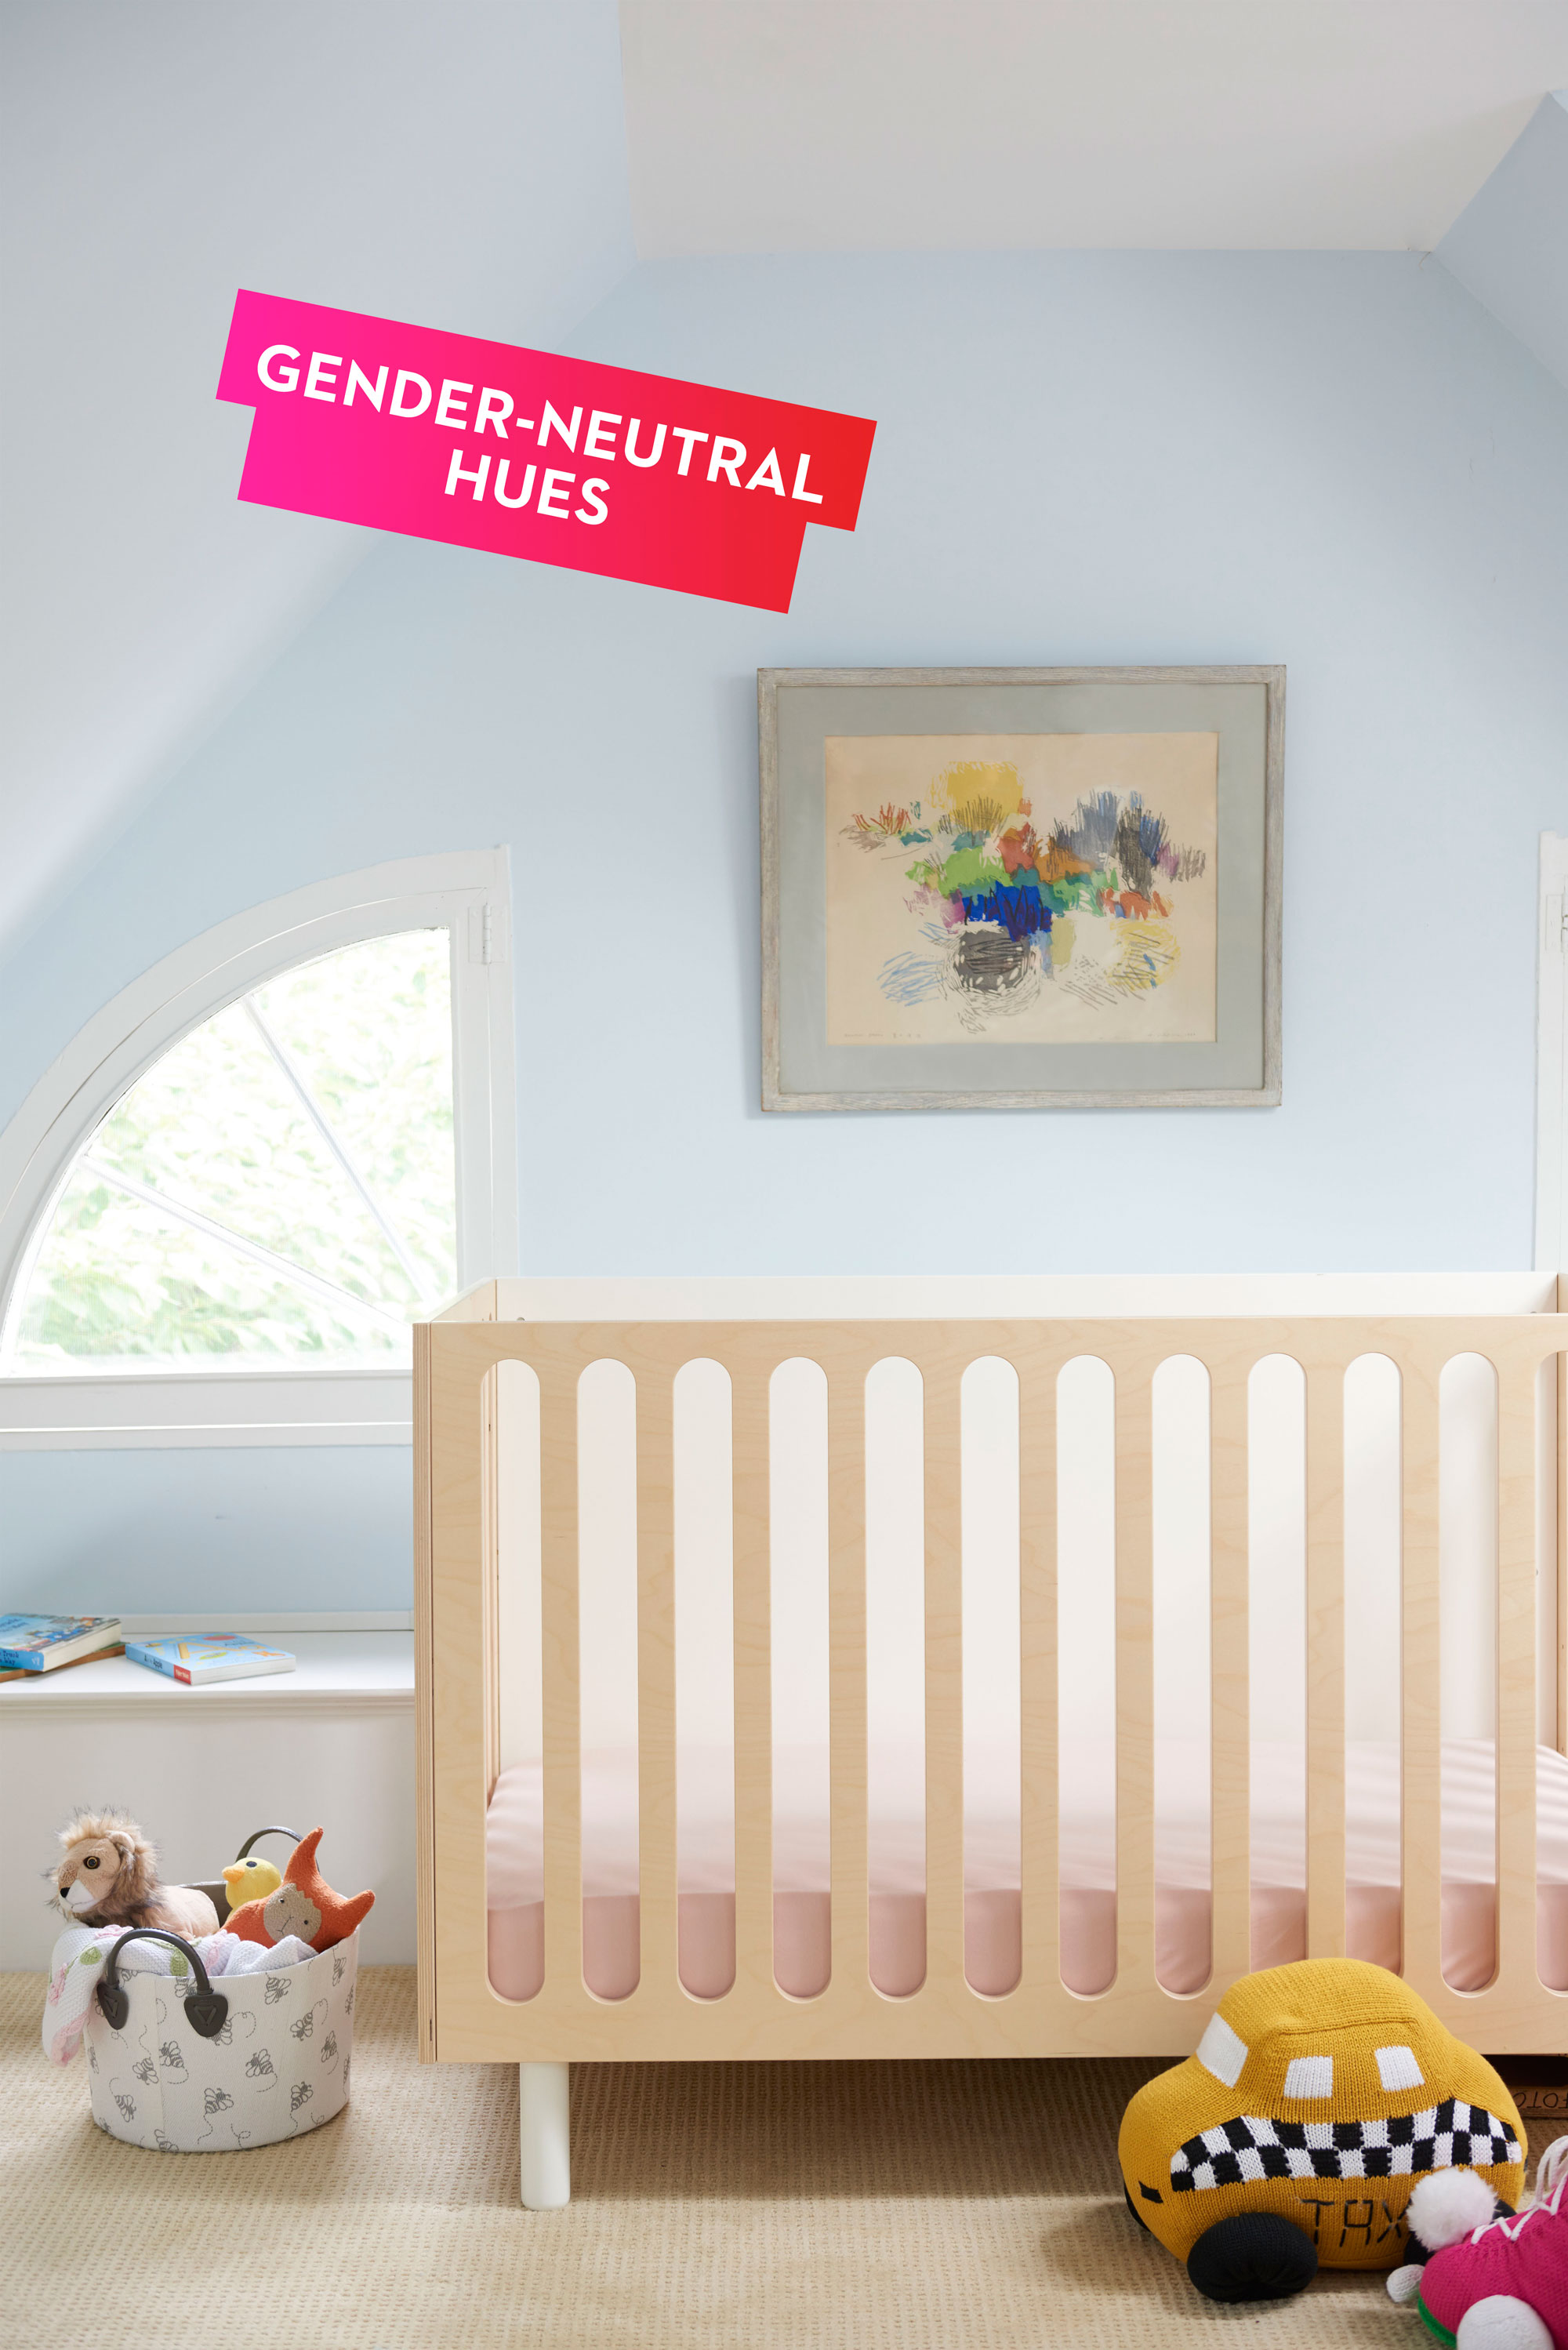 Chic Ways to Design a Kids Bedroom - Kids Bedroom Decor Ideas